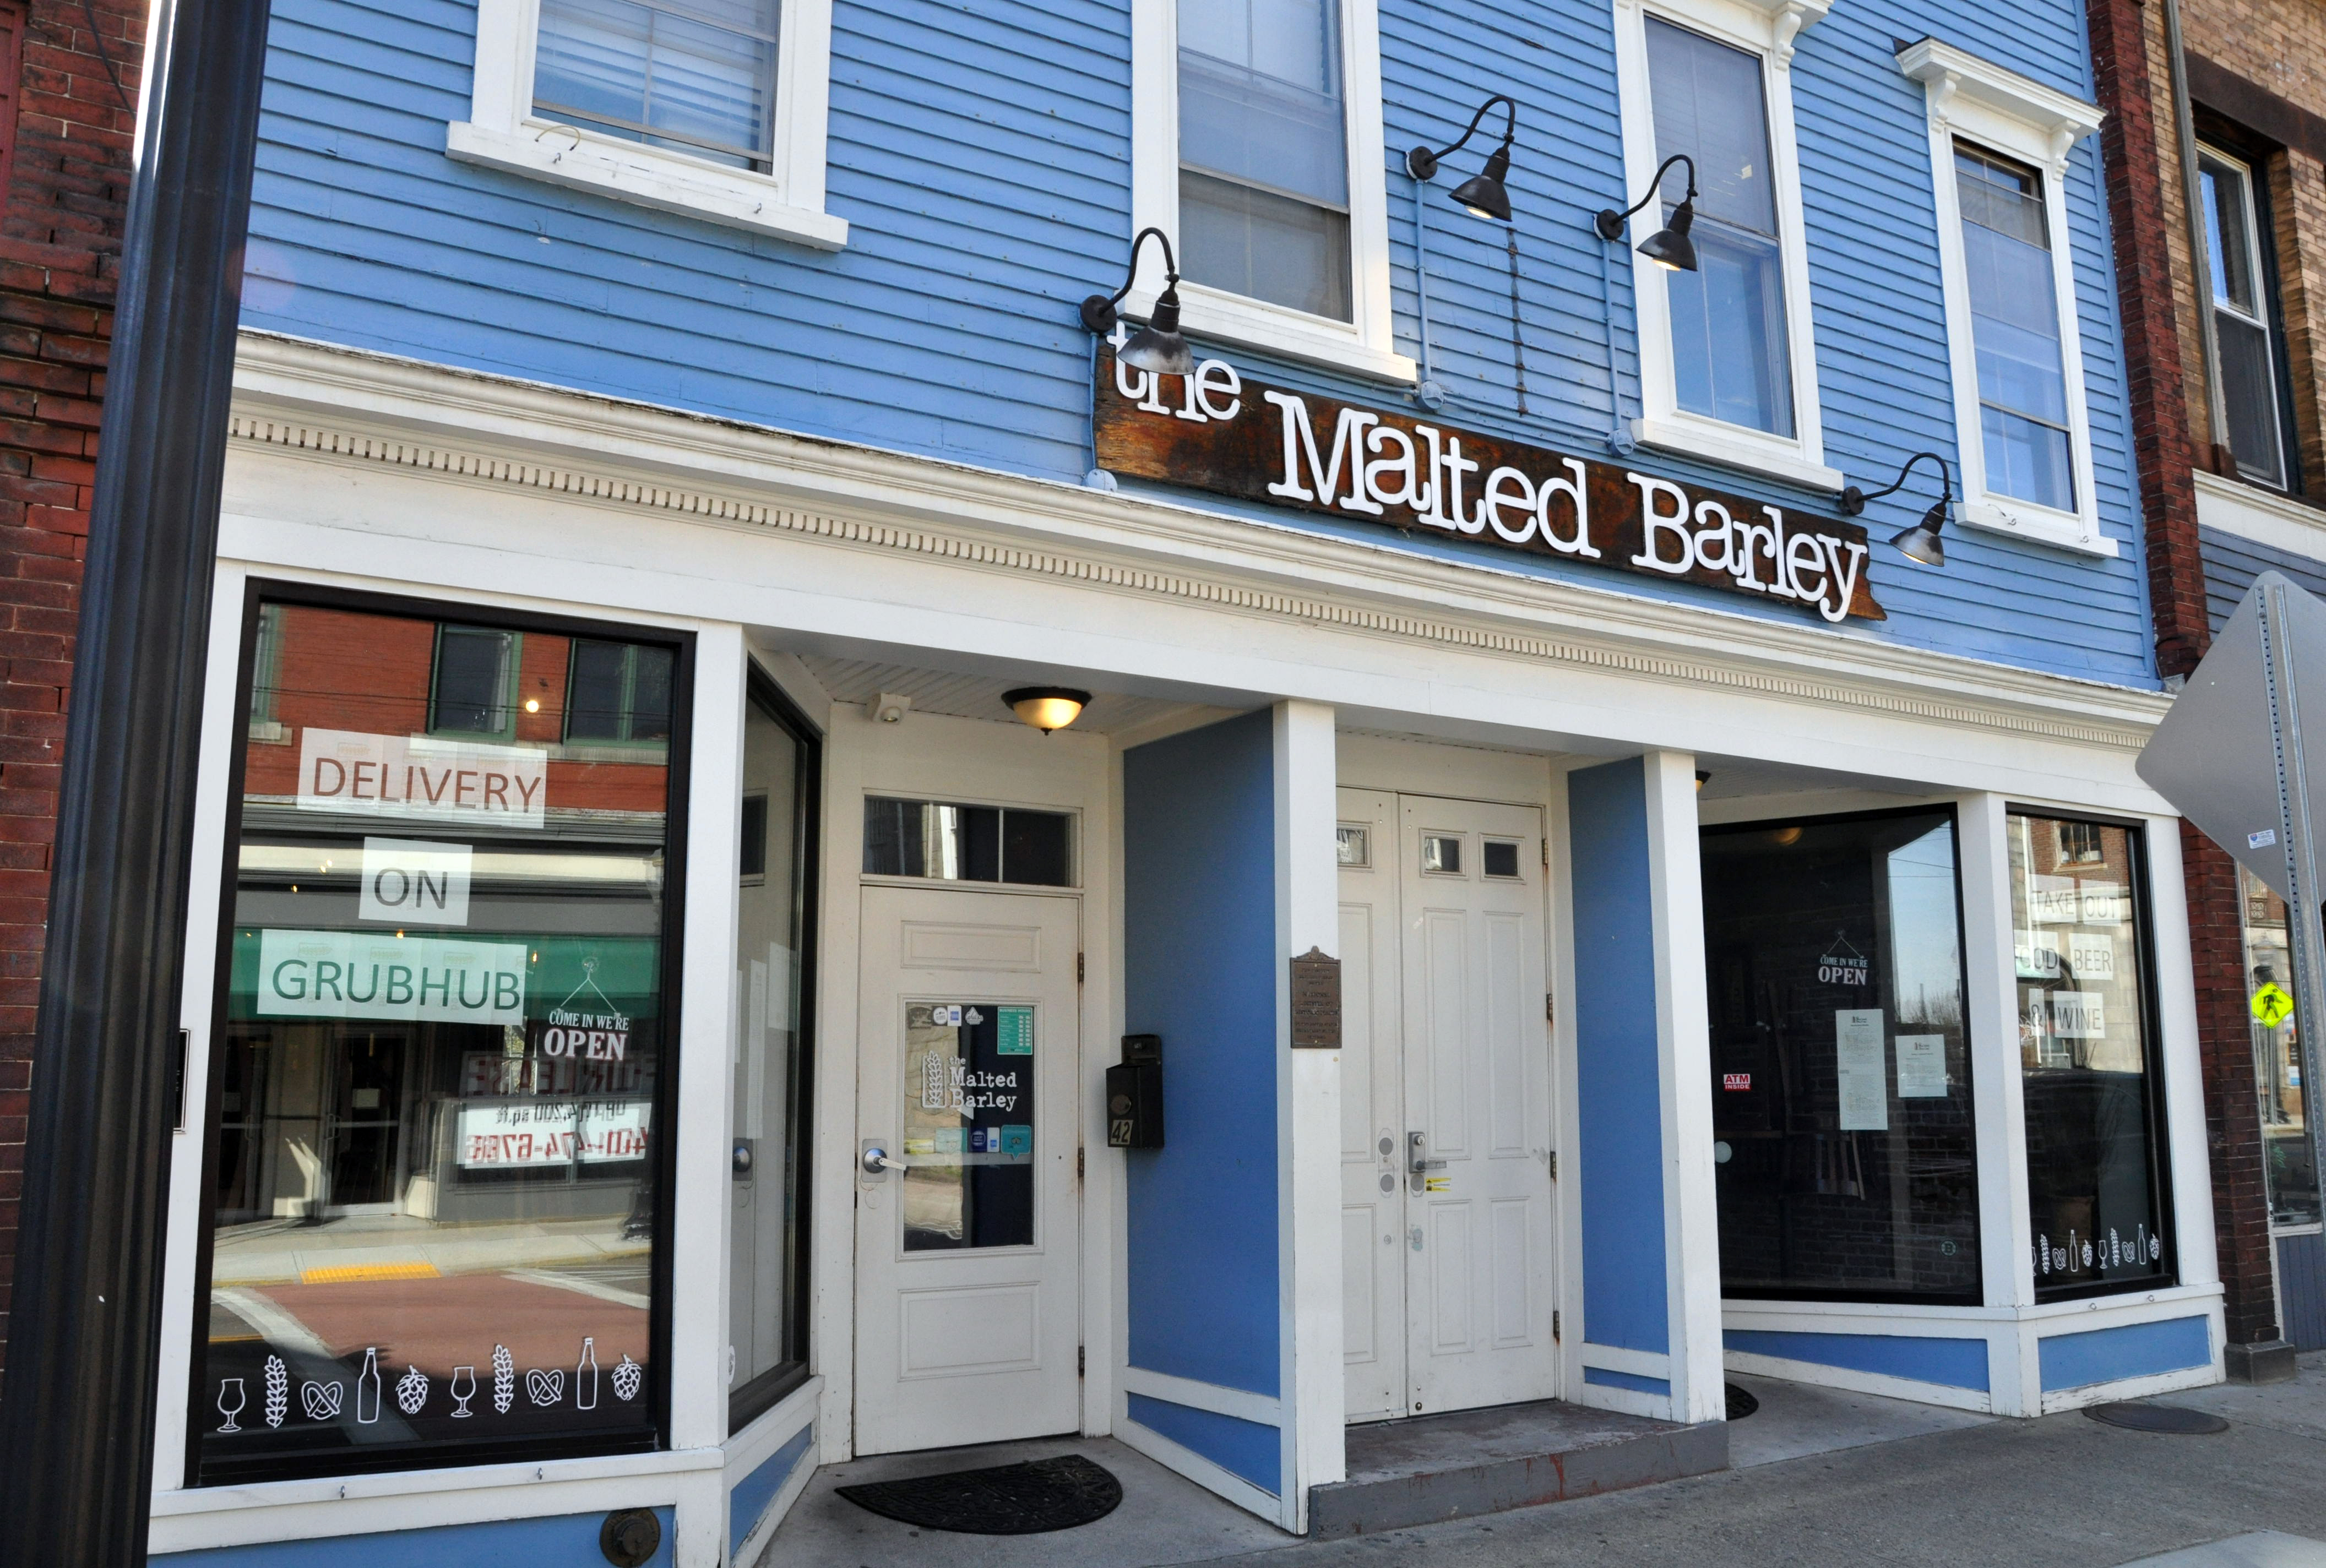 The Malted Barley in downtown Westerly advertises delivery service.